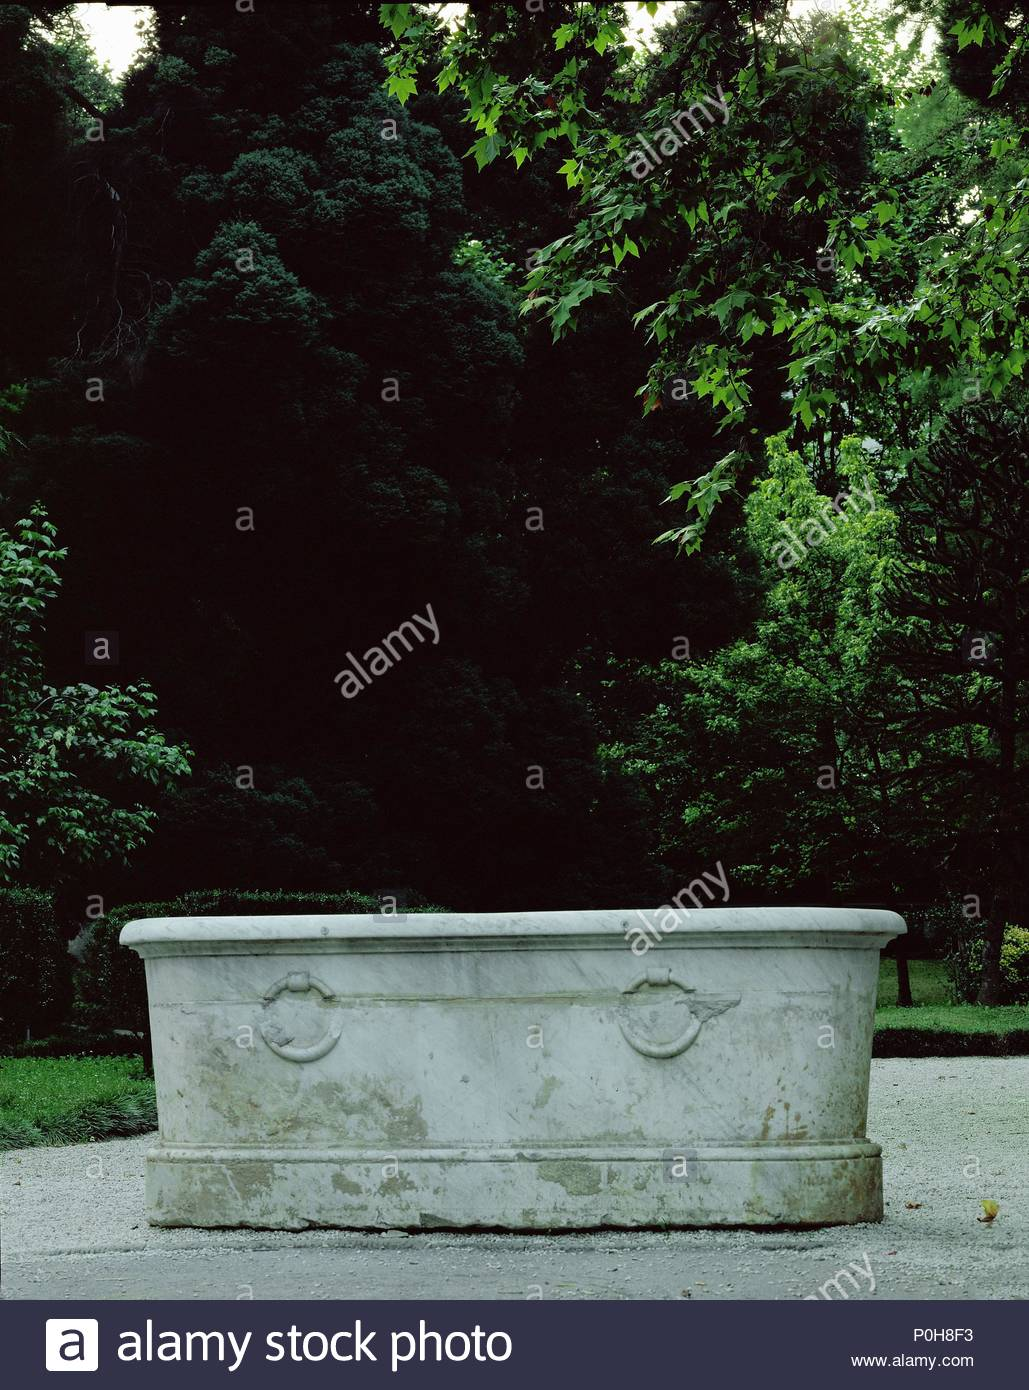 Bagni di Lucca, marble bathtubs, used for bathing in the early 19th ...